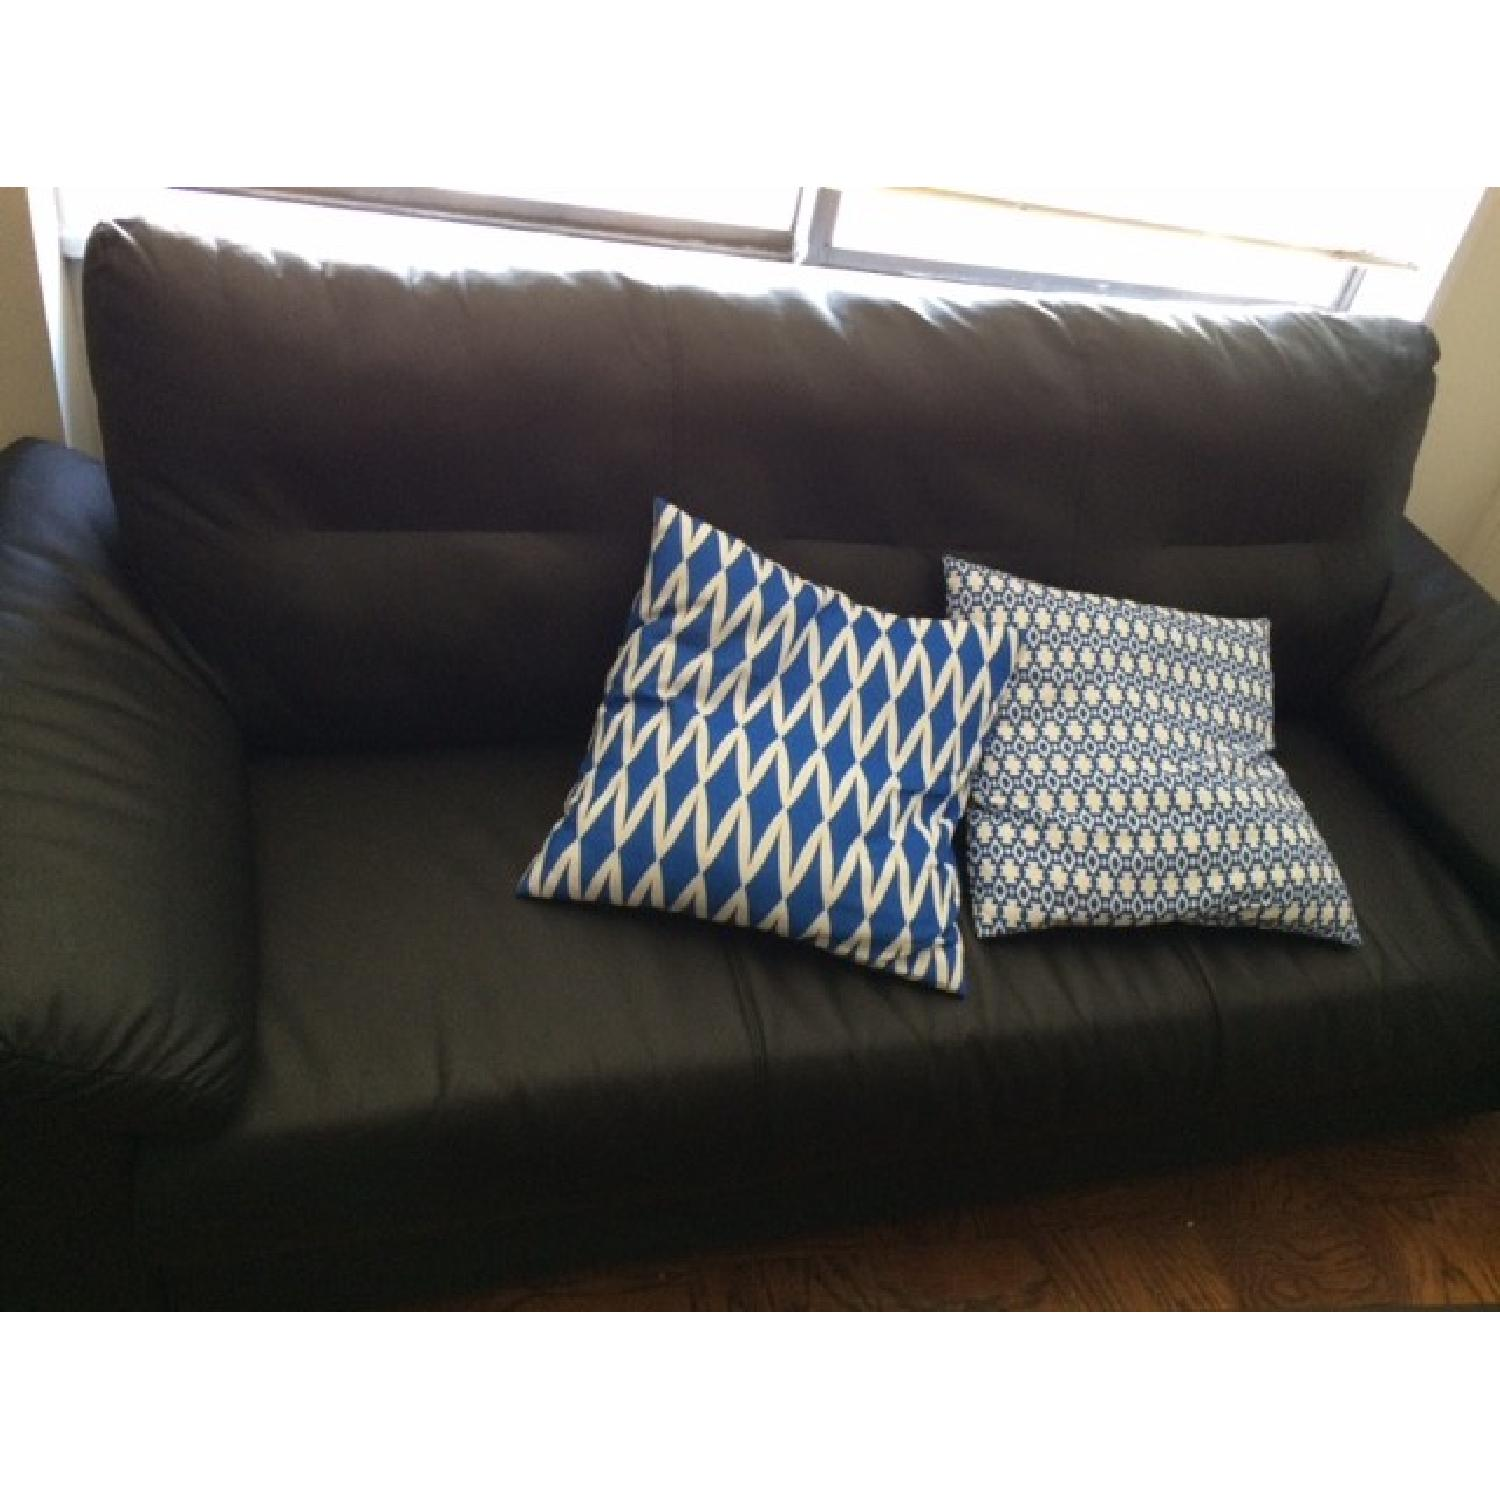 Picture of: Black Leather Couch W 2 Blue Pillows Aptdeco